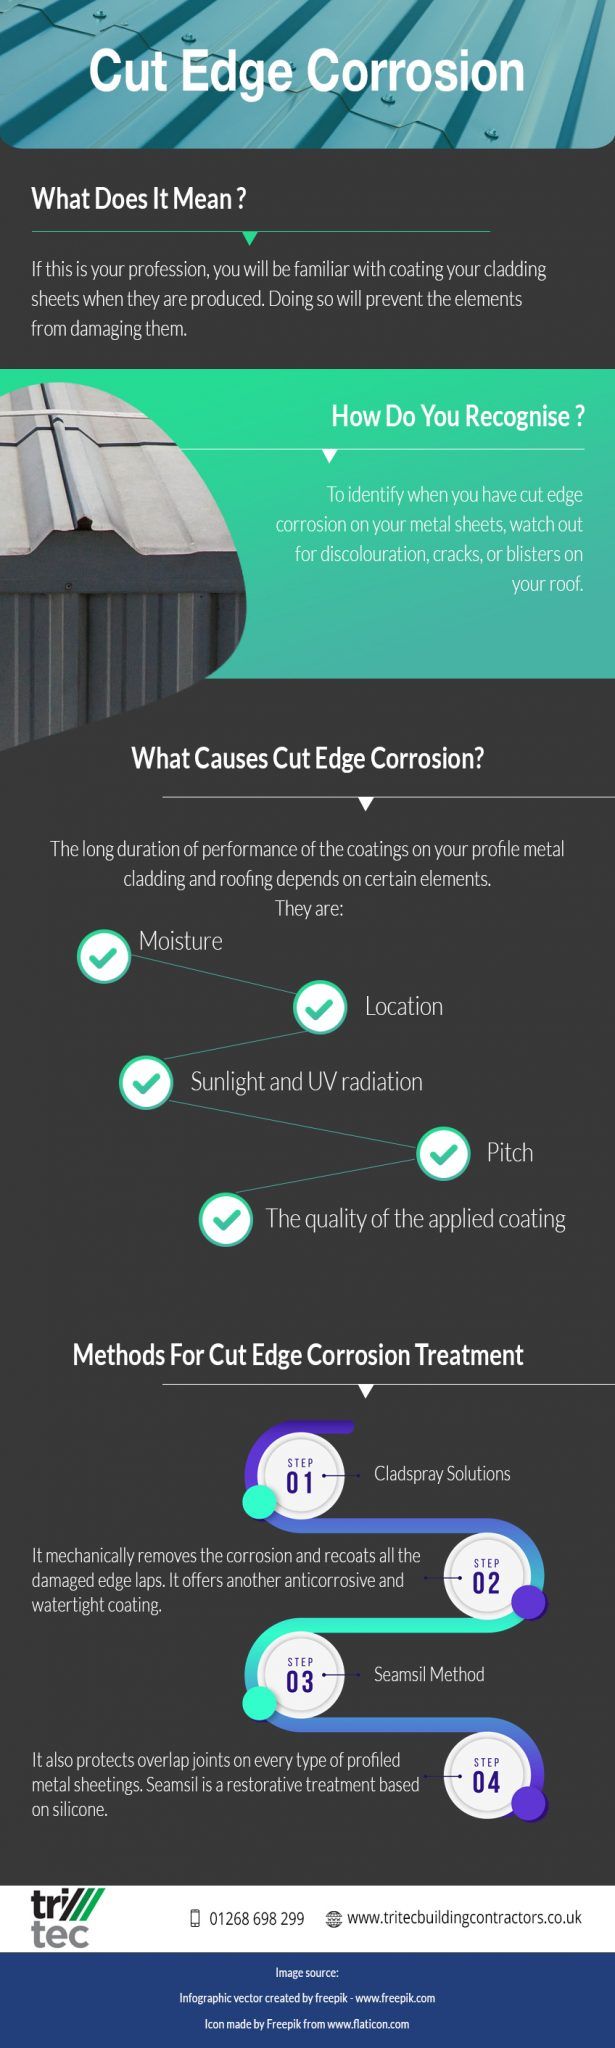 cut edge corrosion infographic